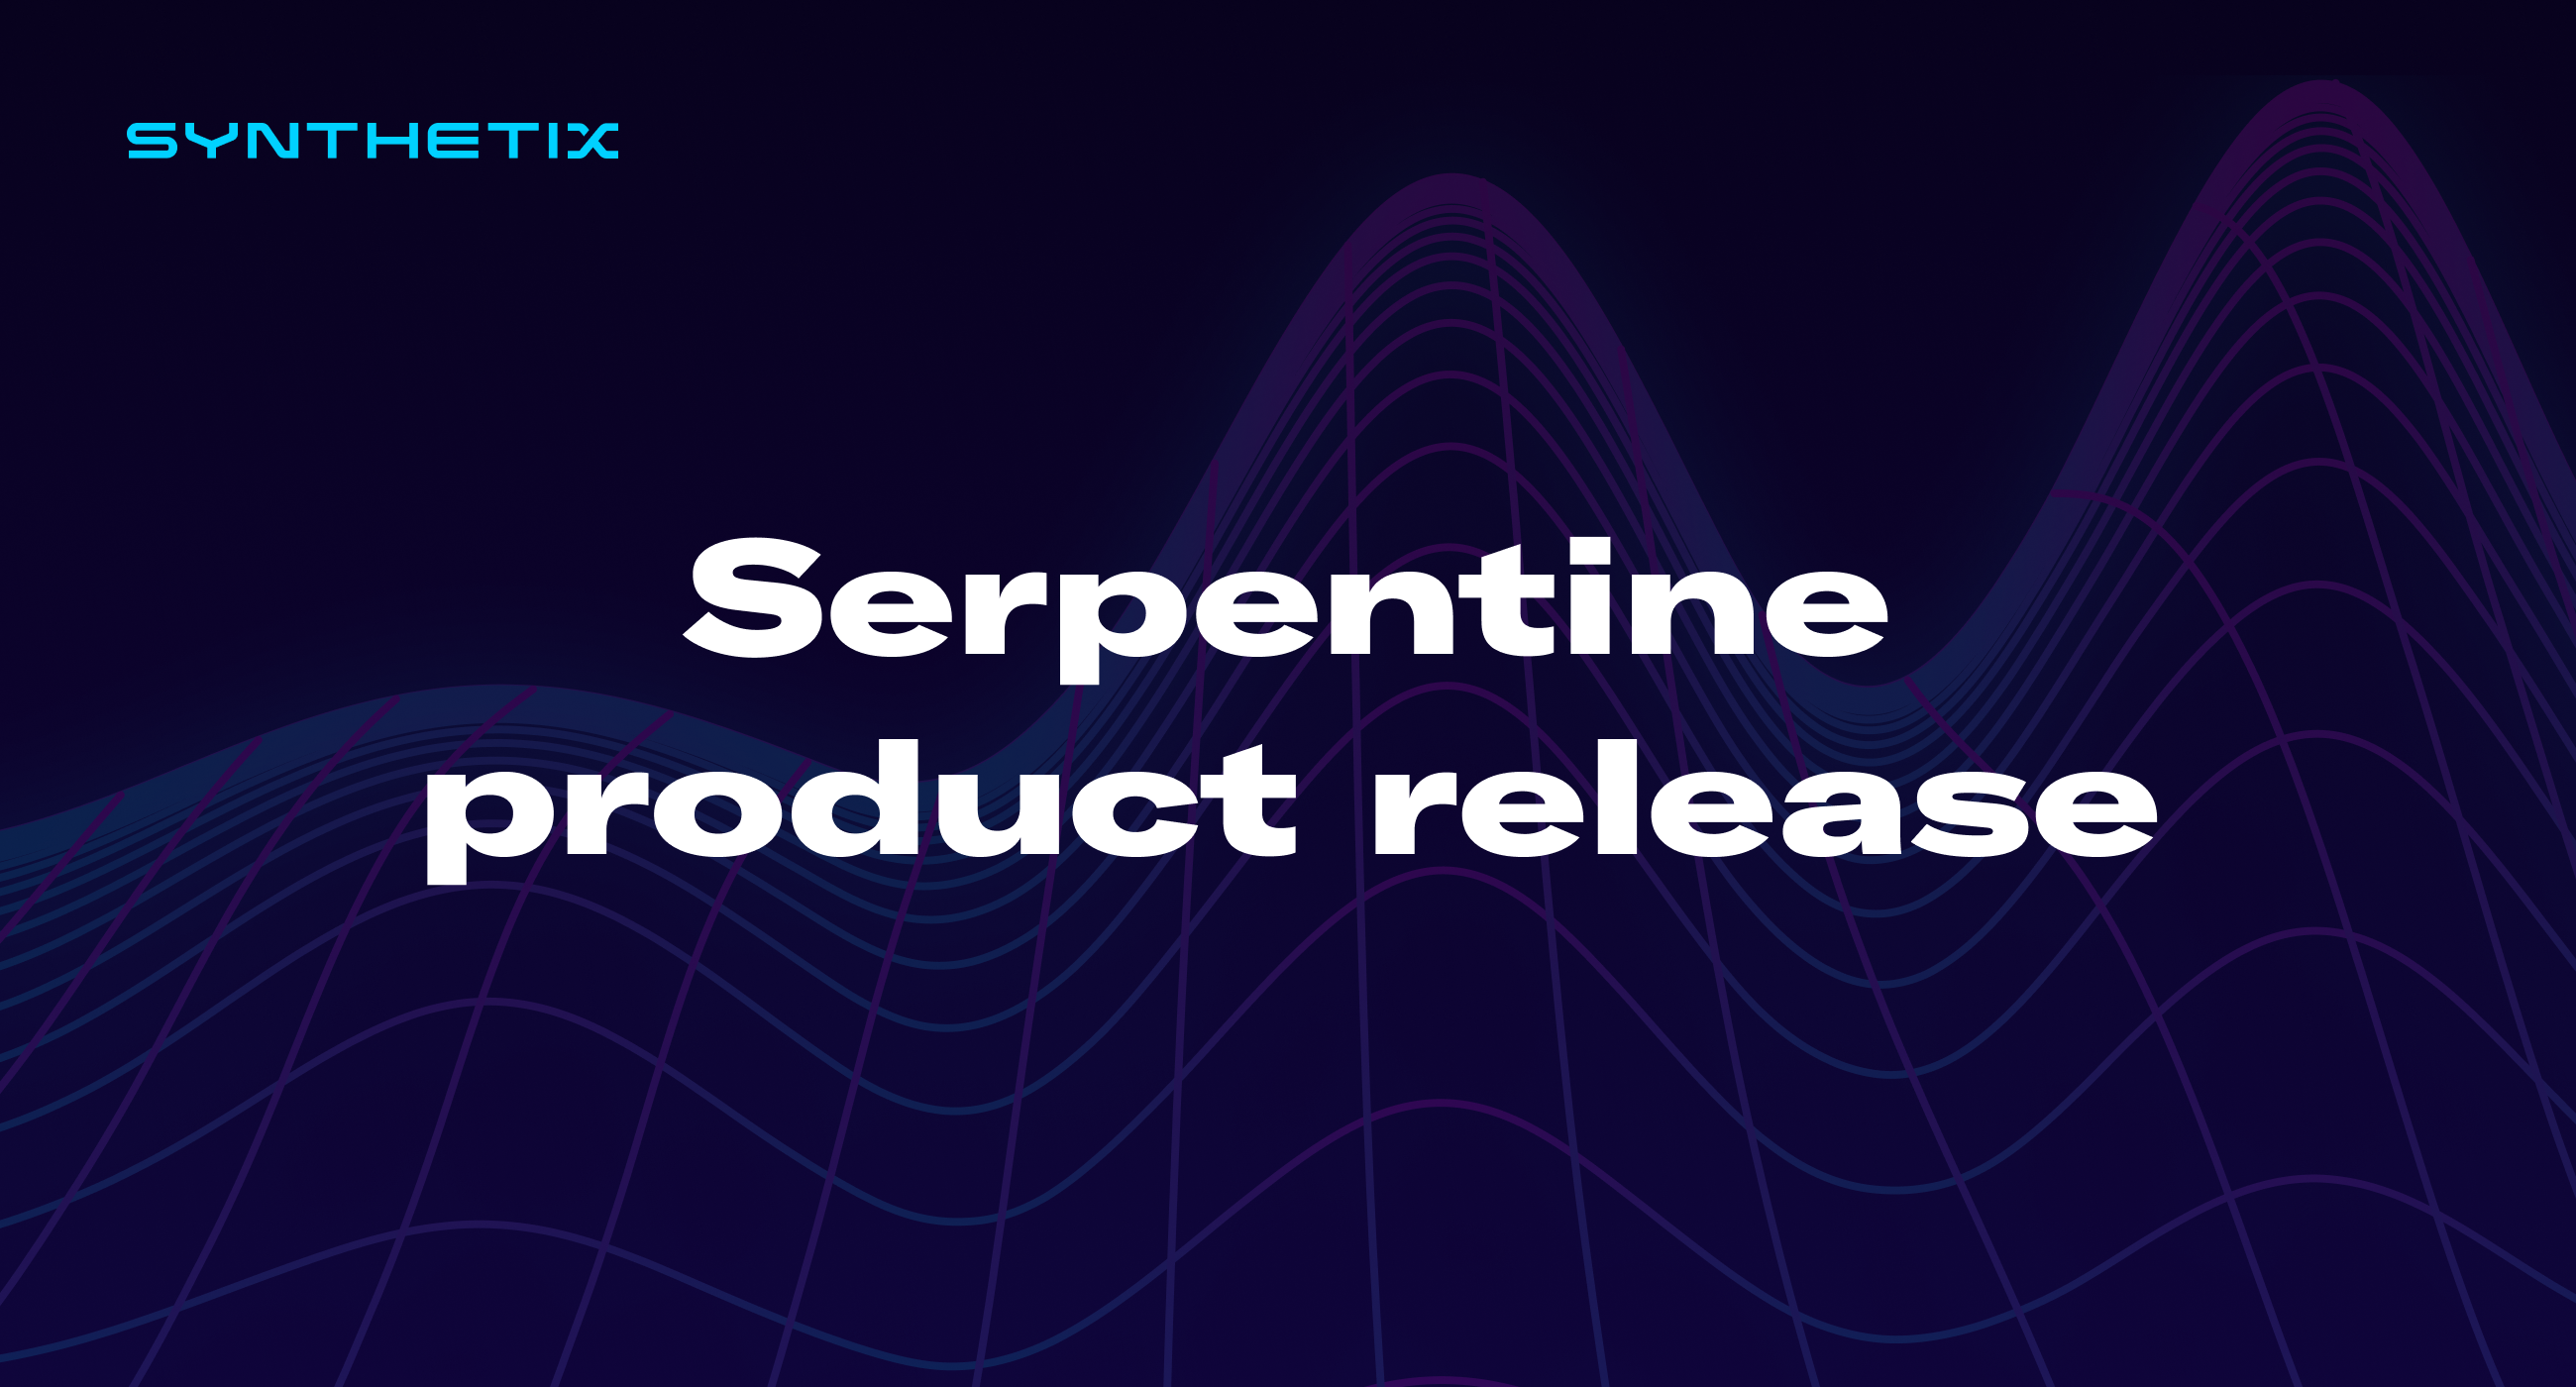 Serpentine product release